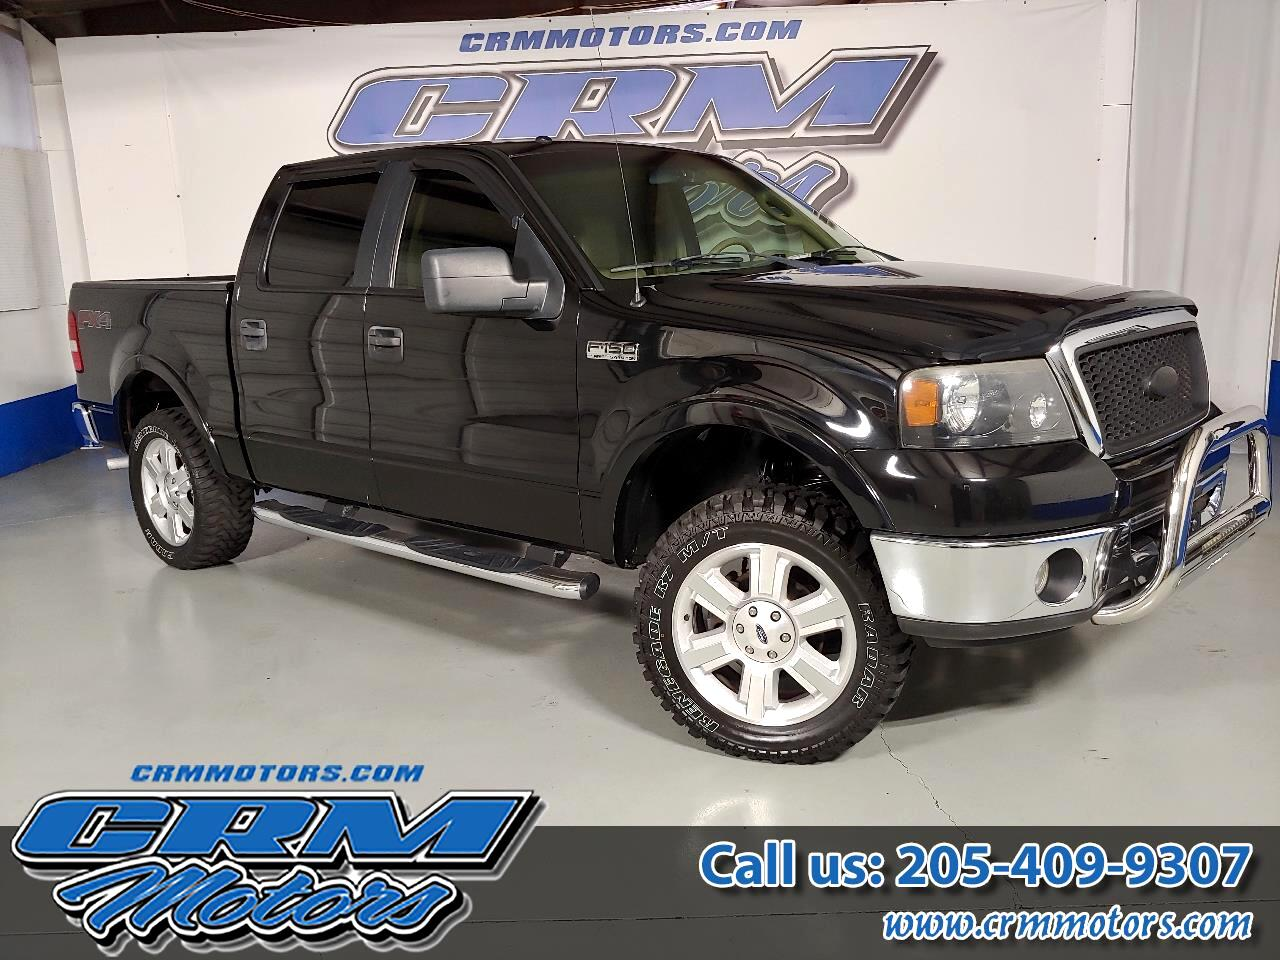 2007 Ford F-150 4WD, SUPERCREW, LARIAT, LEATHER, OFFROAD TIRES!